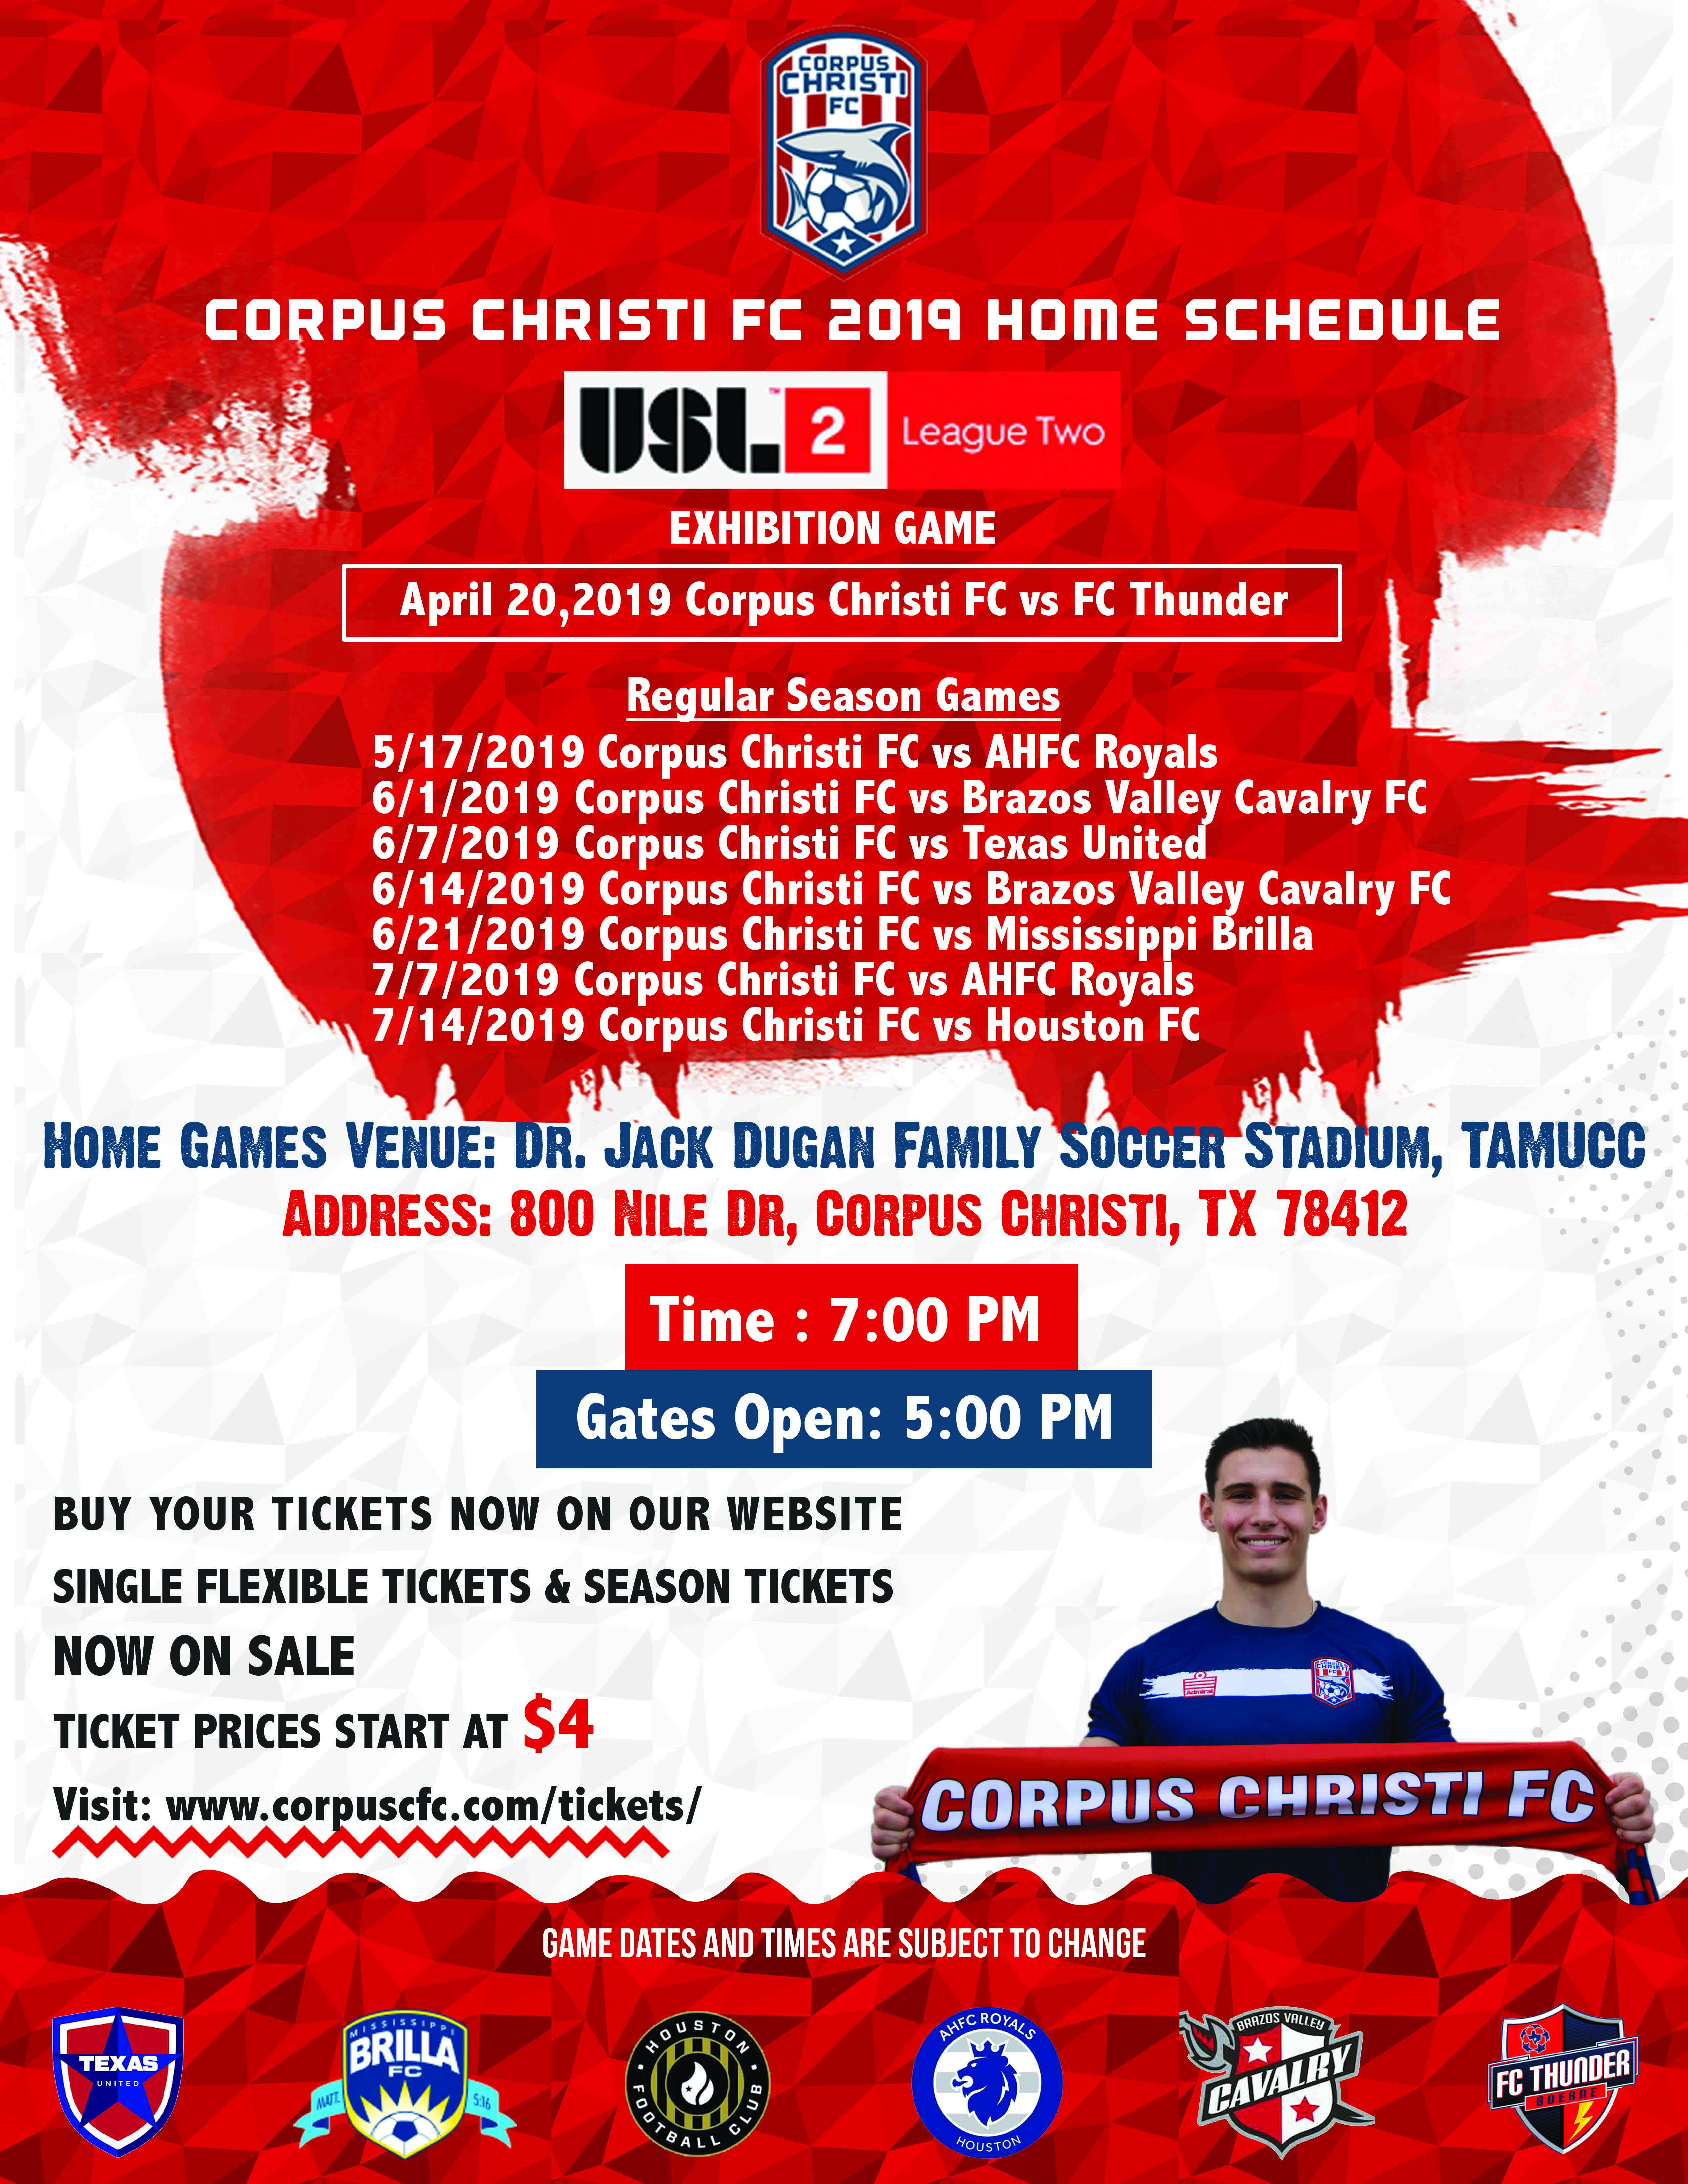 Corpus Christi Football Club Announces Its 2019 Schedule and Ticket Sale